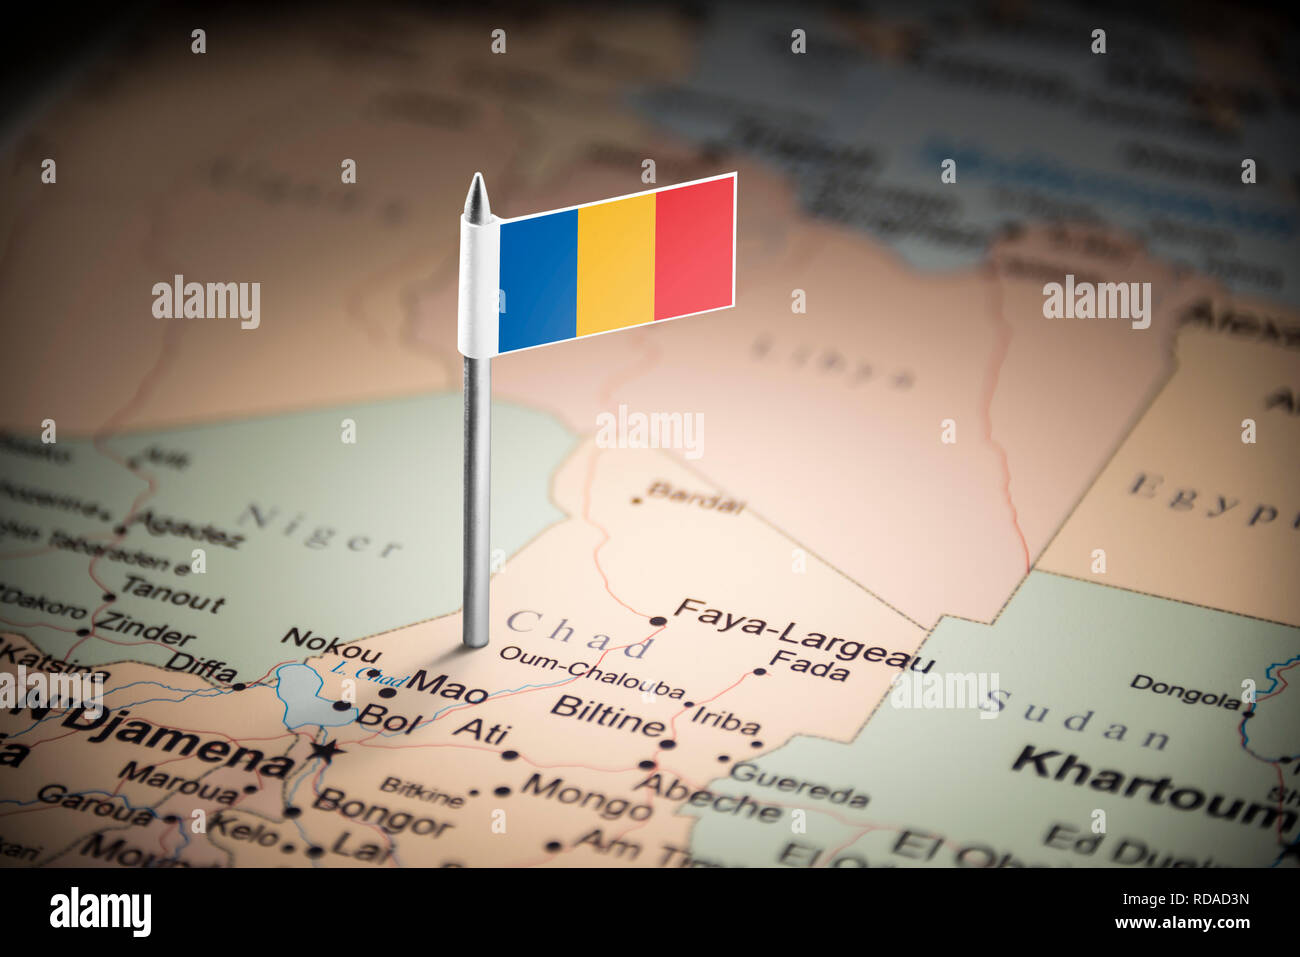 Chad marked with a flag on the map Stock Photo